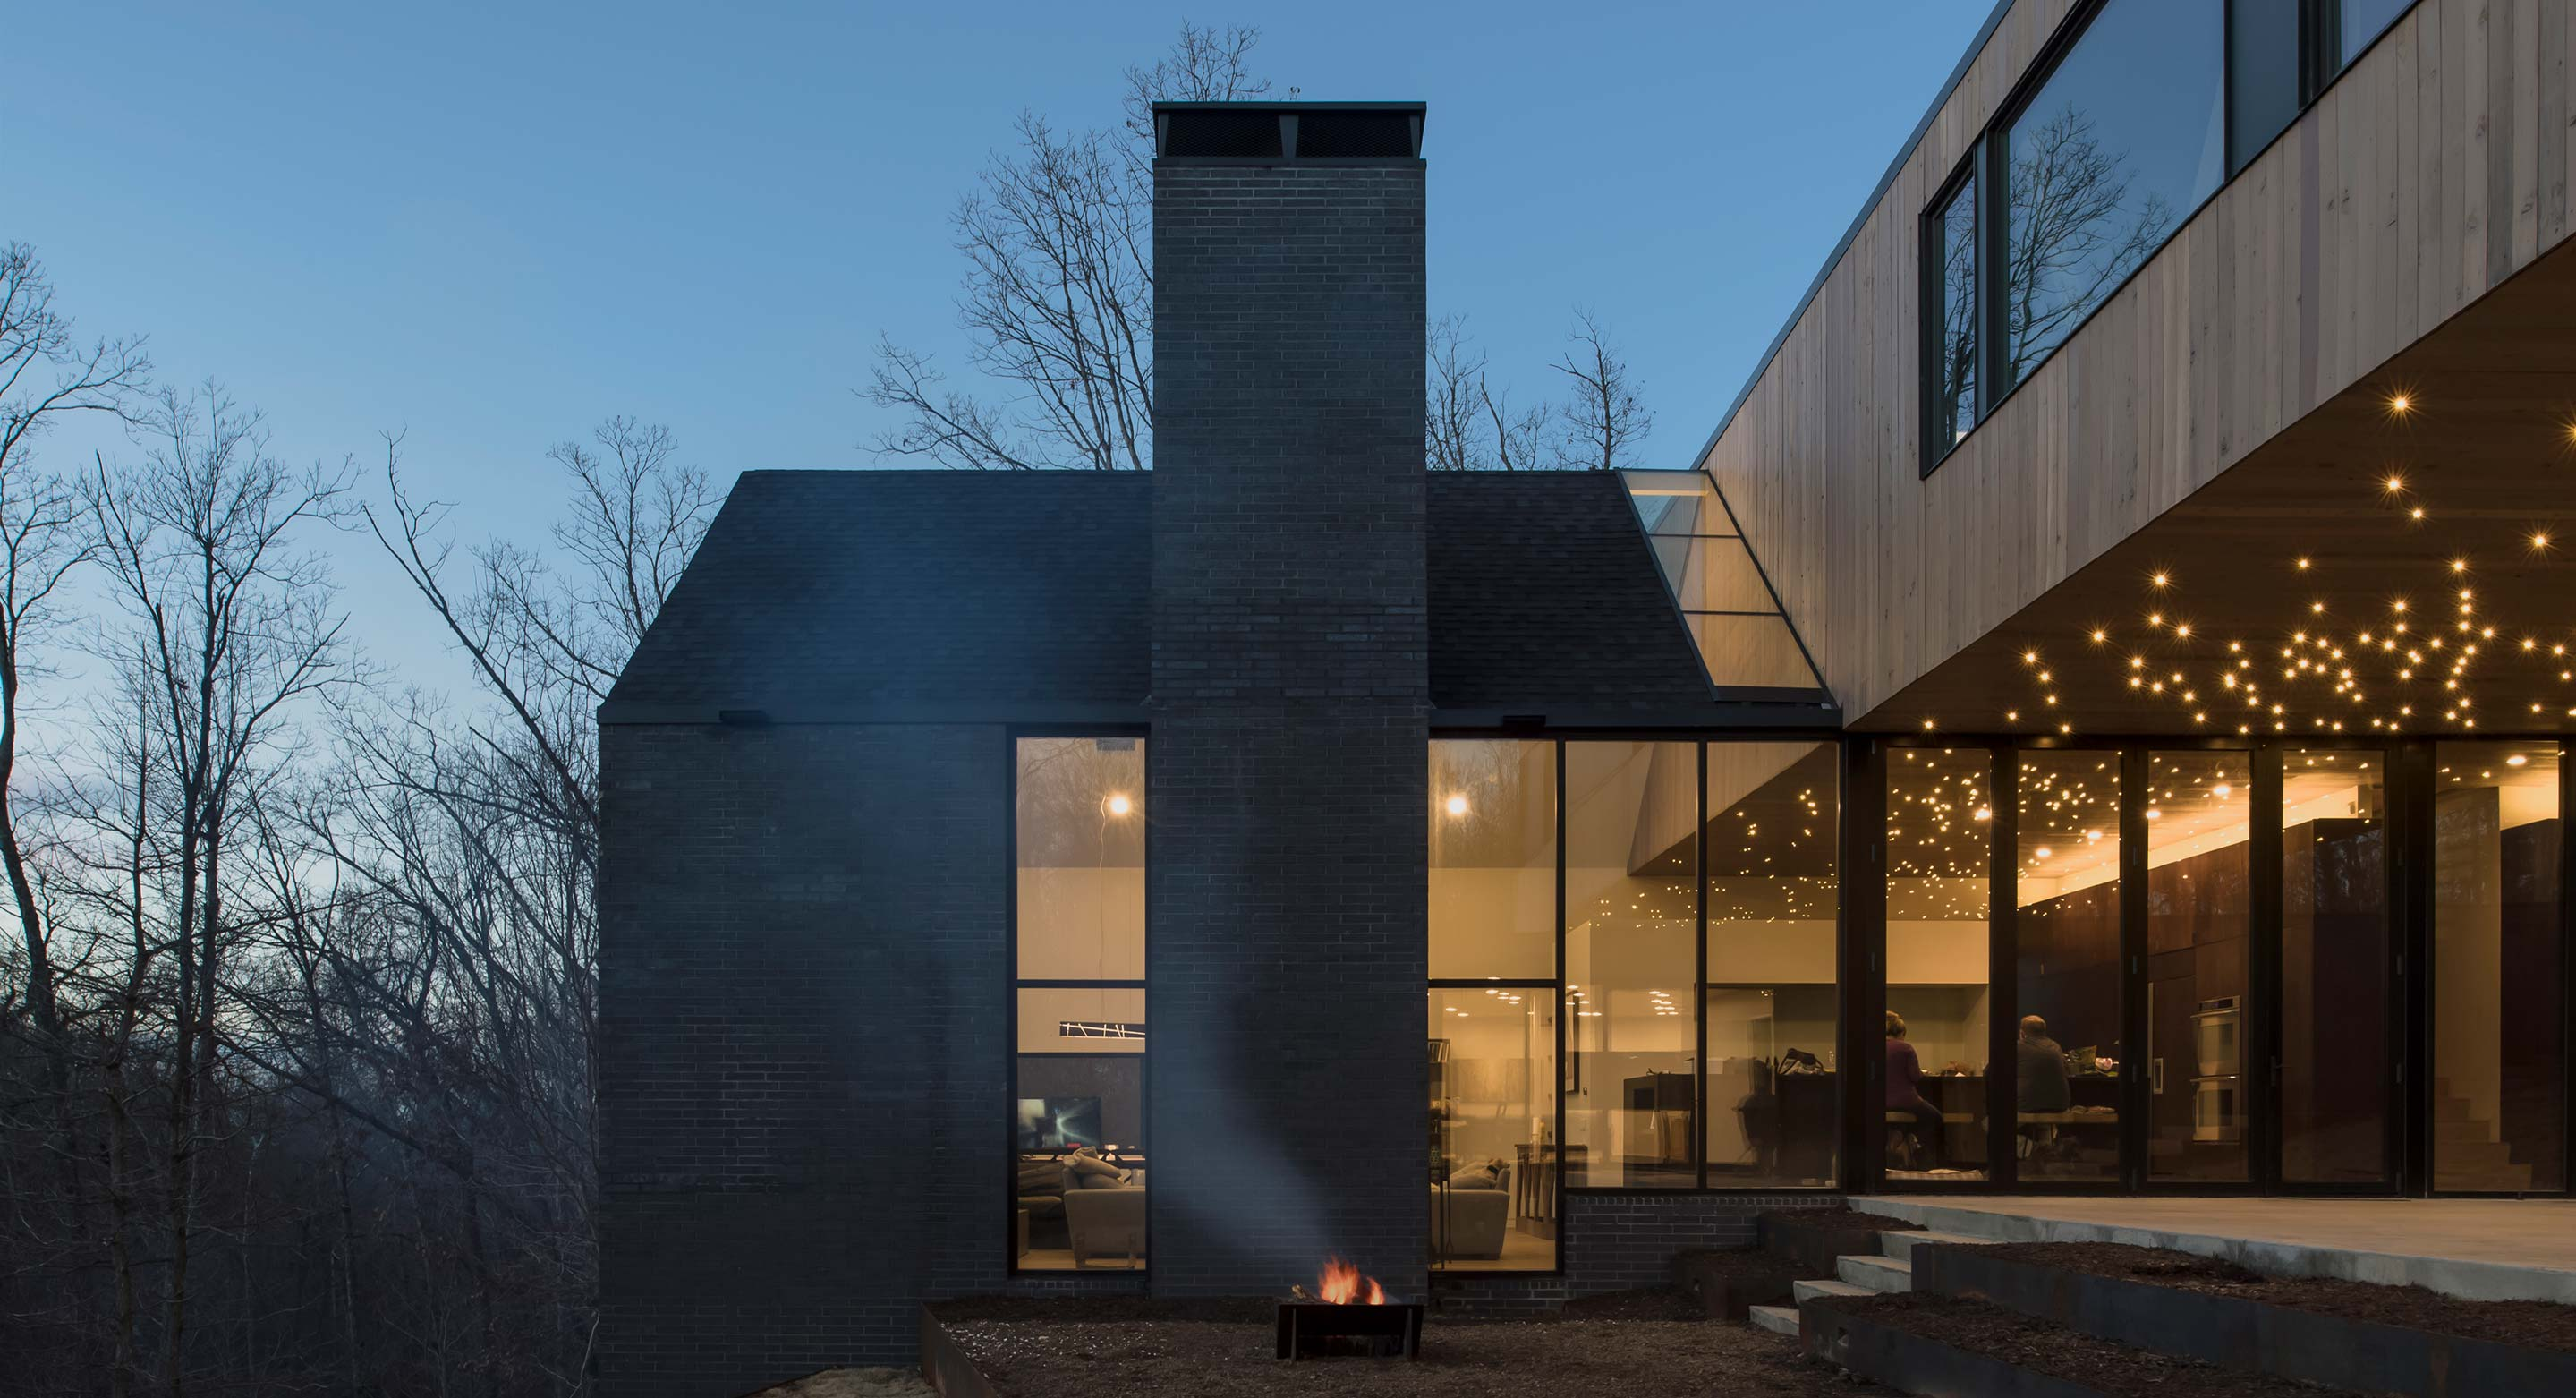 The Dogwoodtrot House By Modus Studio